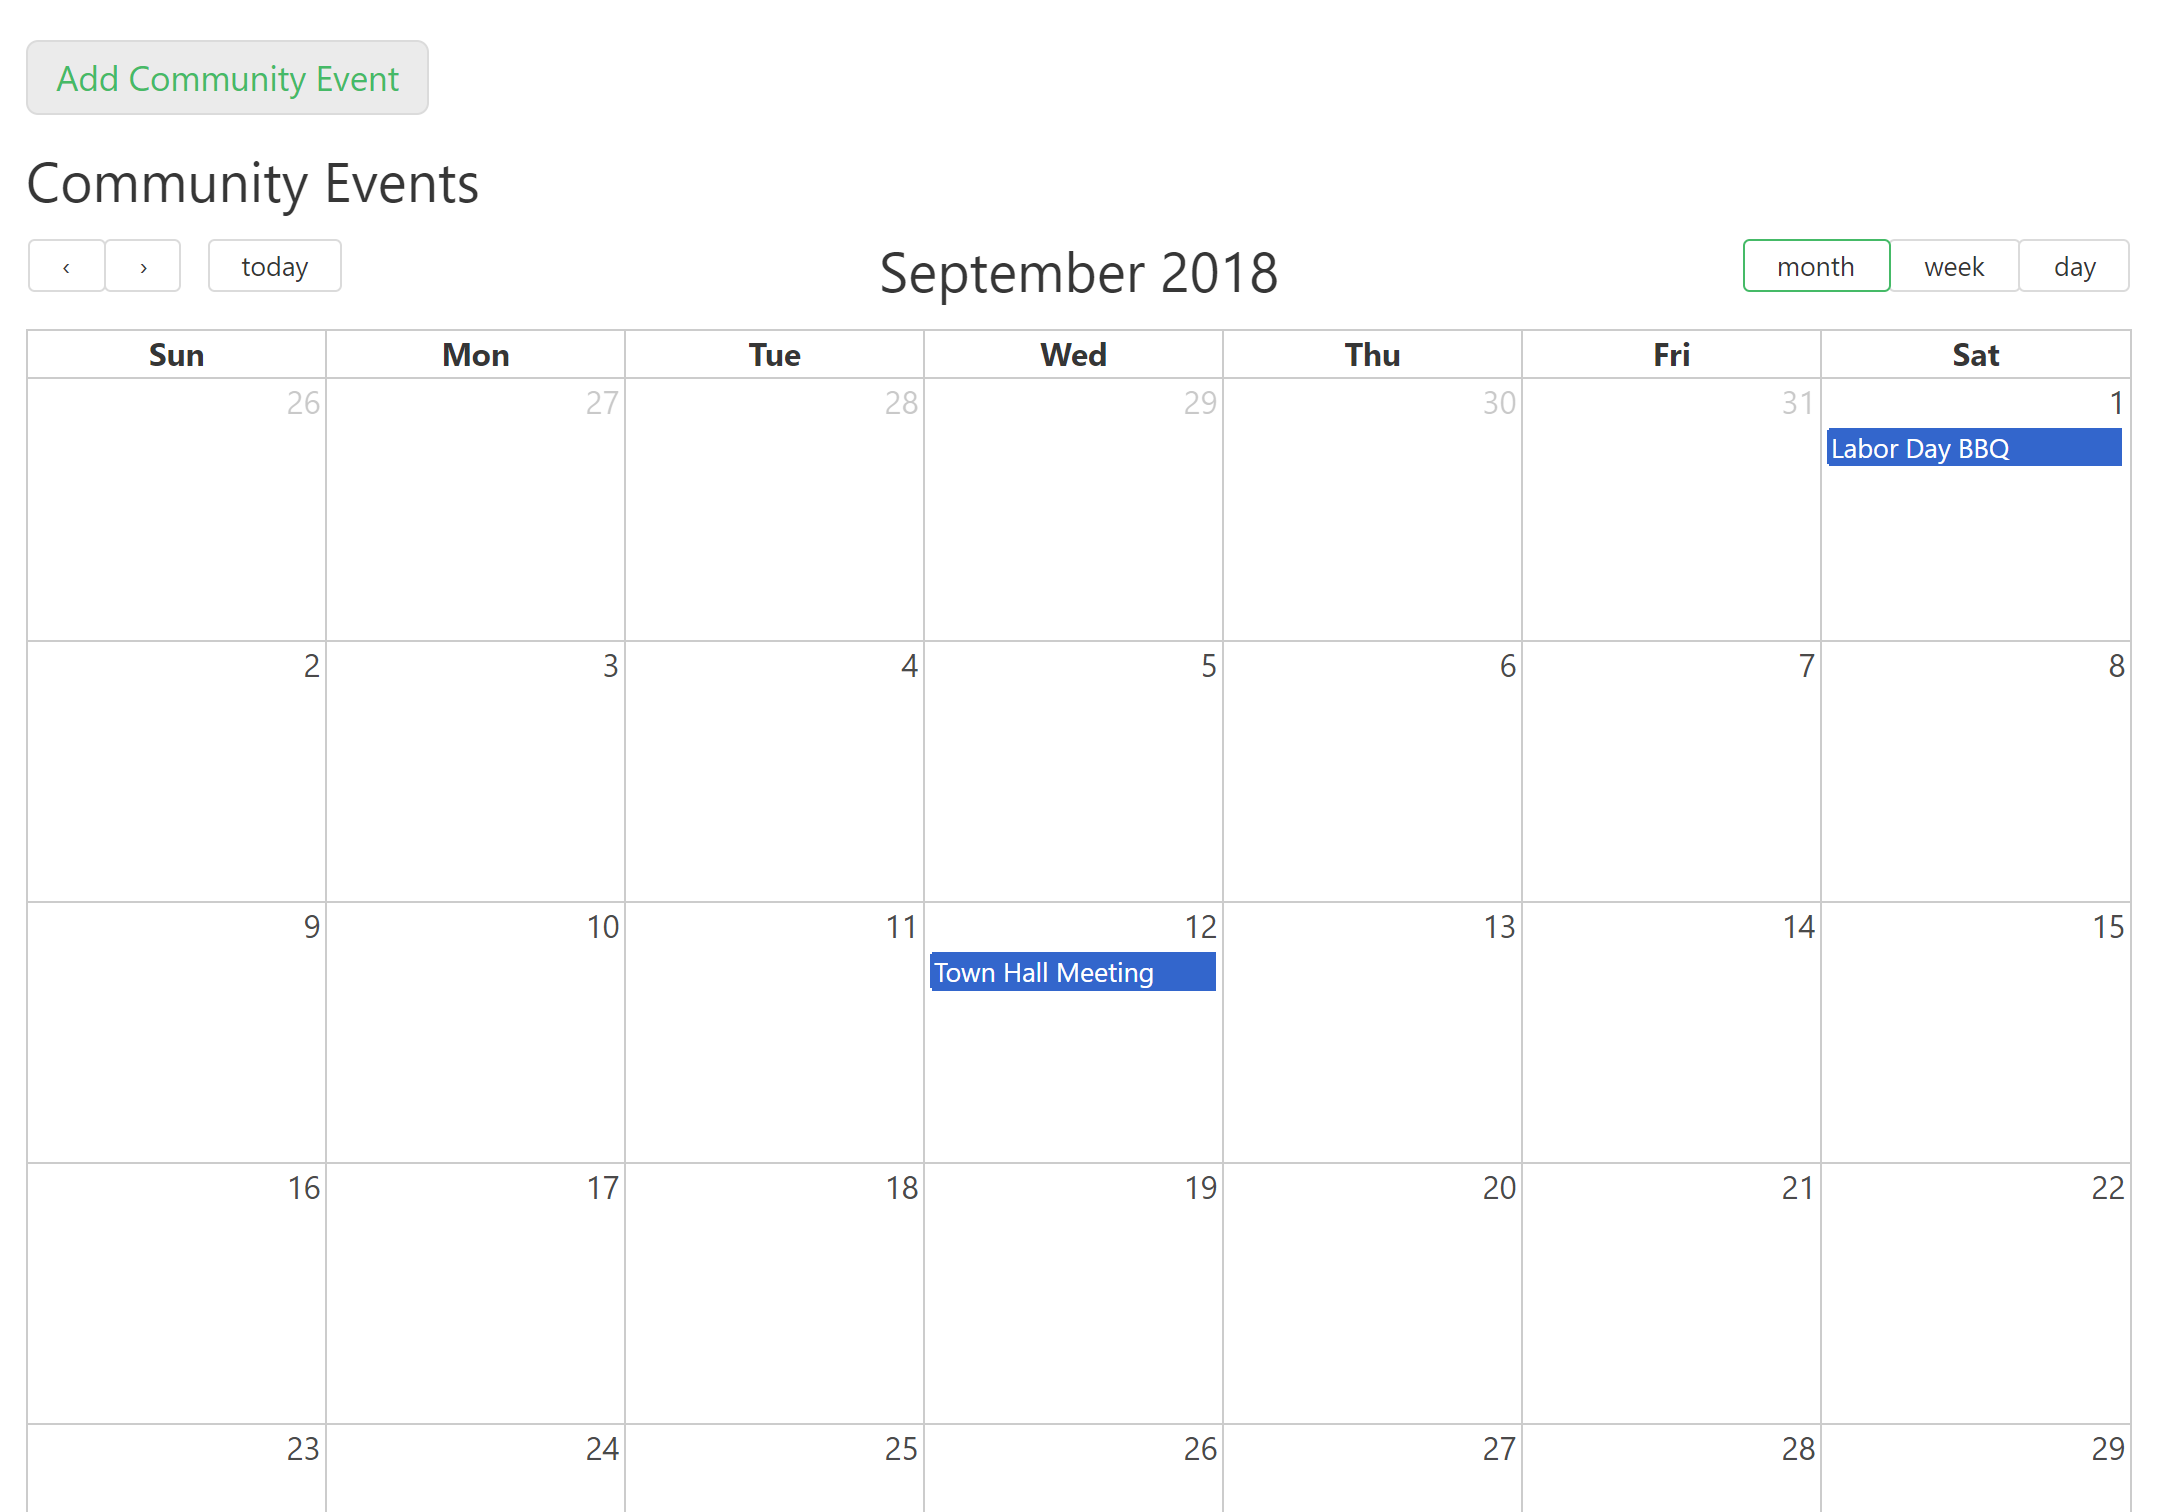 Residents Can View Upcoming Community Events And Host Their Own Event With This Calendar